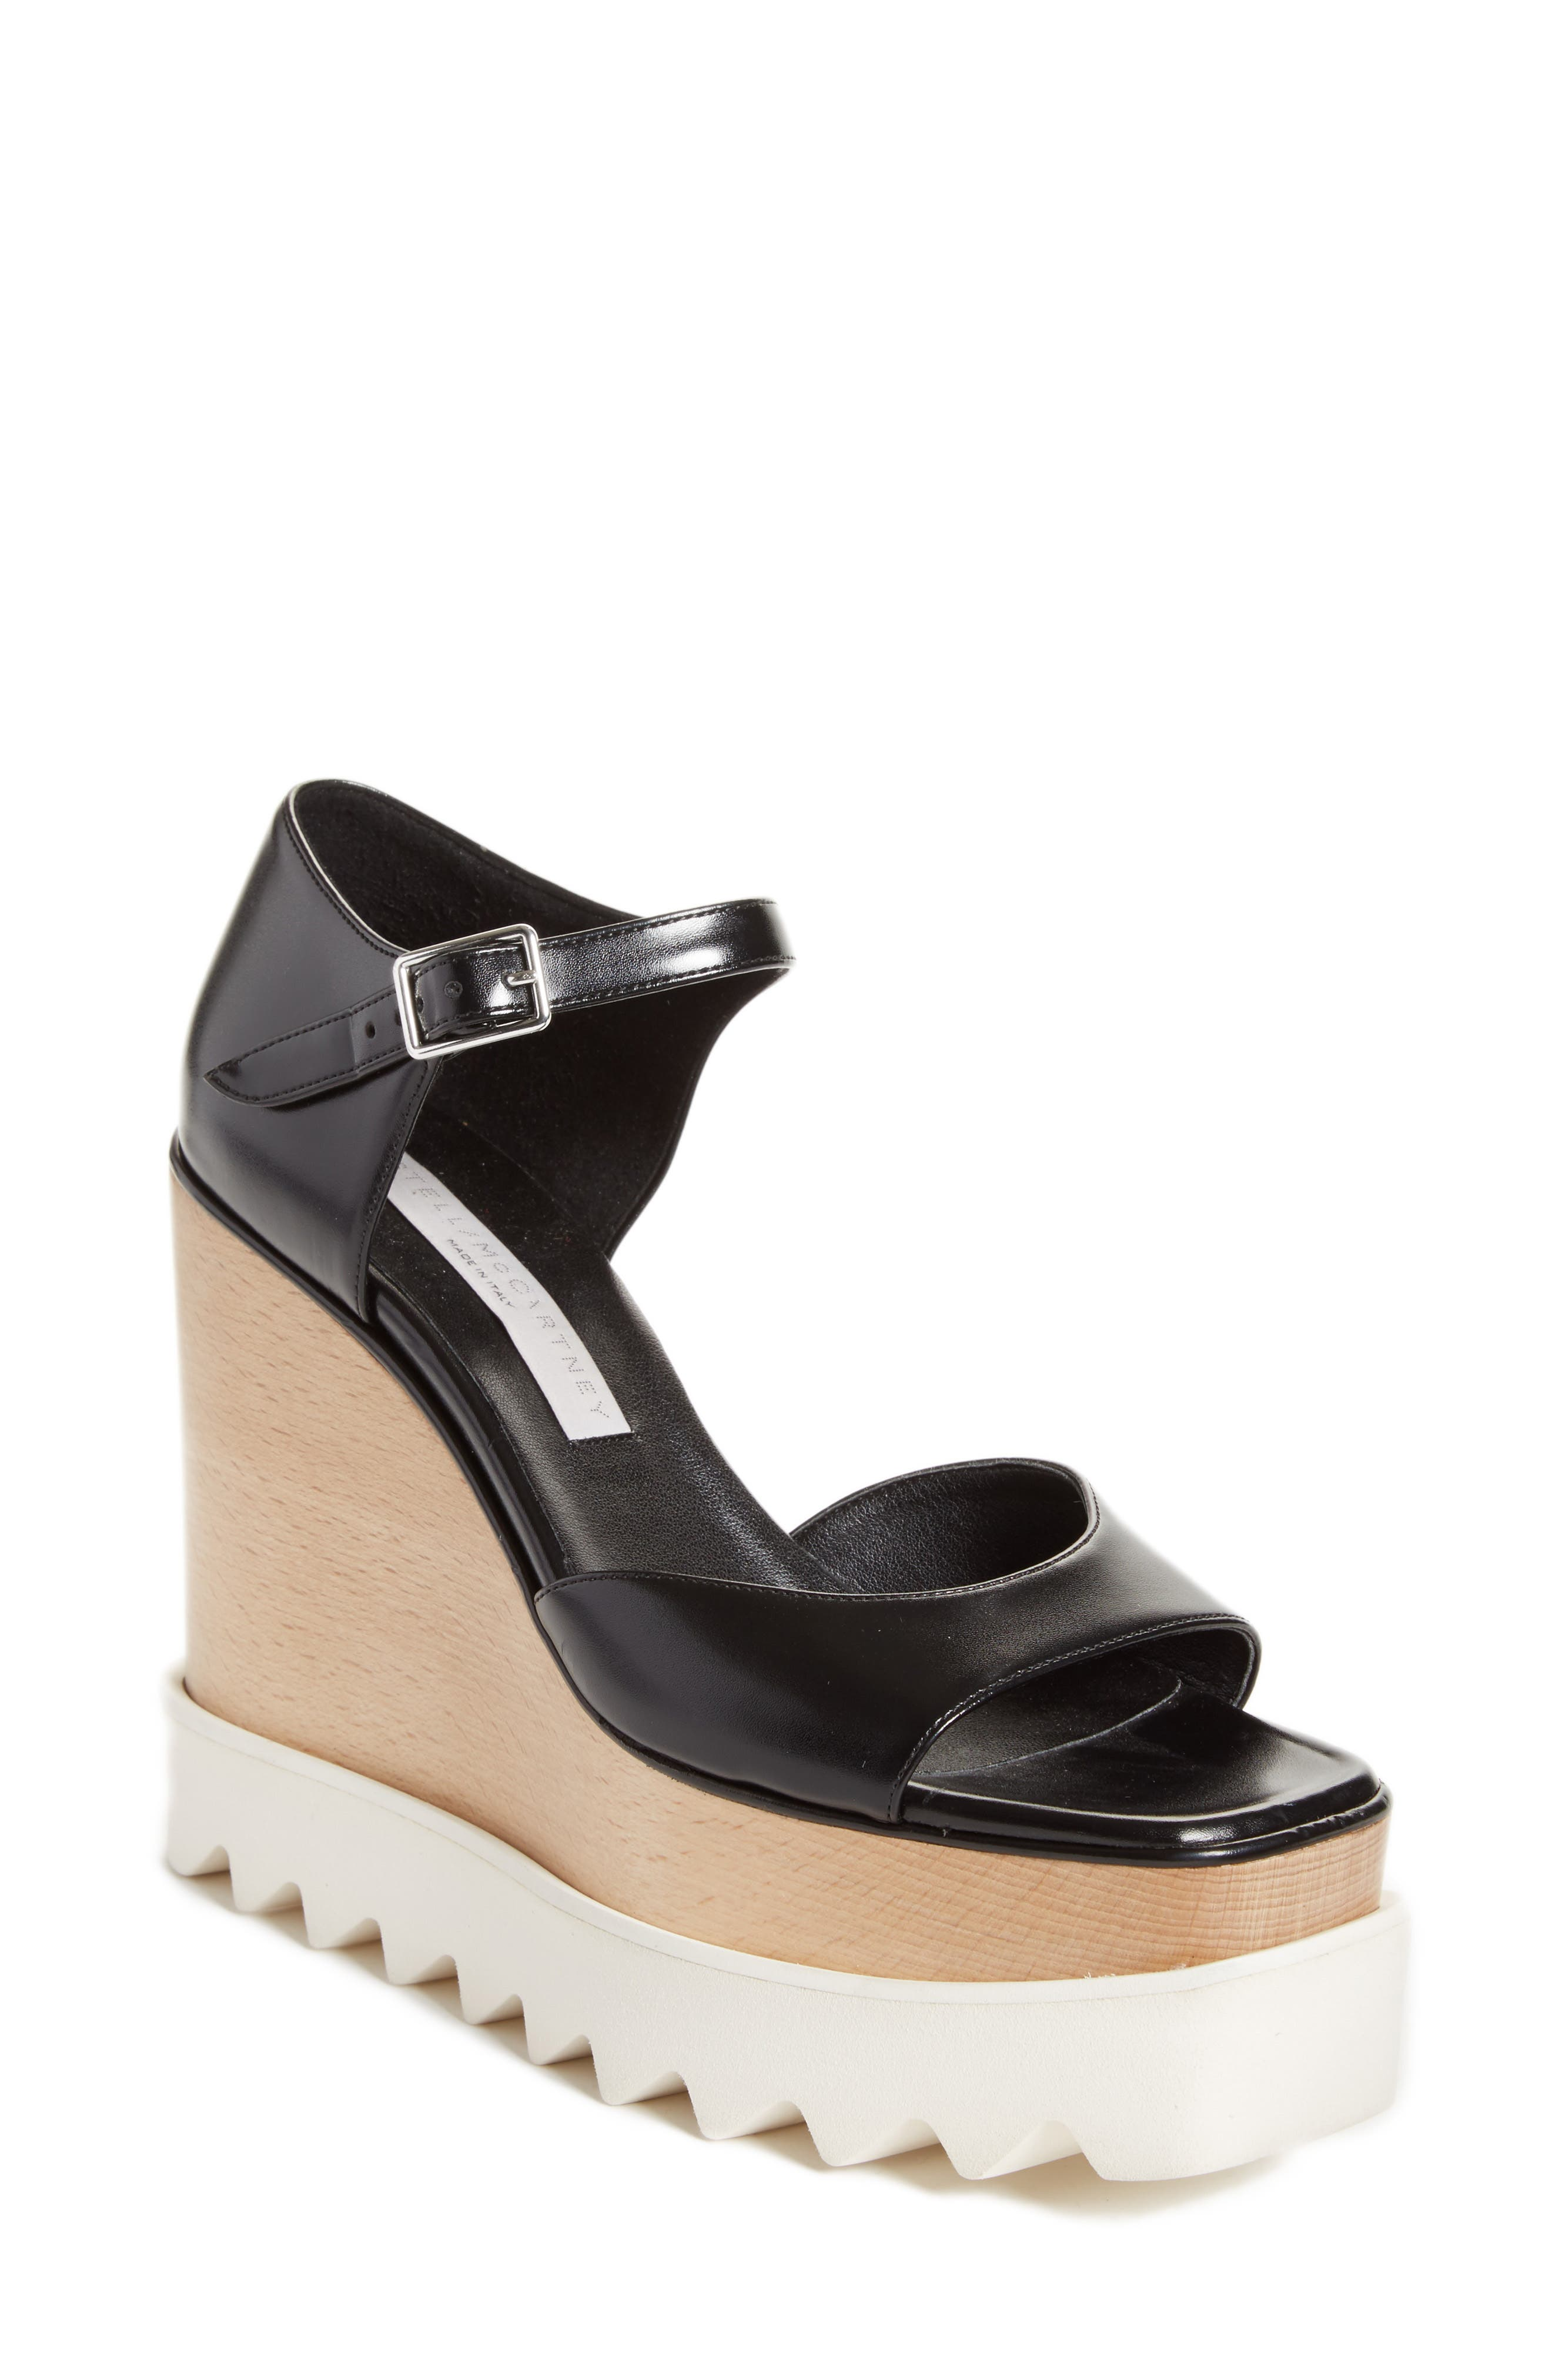 Alternate Image 1 Selected - Stella McCartney Platform Wedge Sandal (Women)